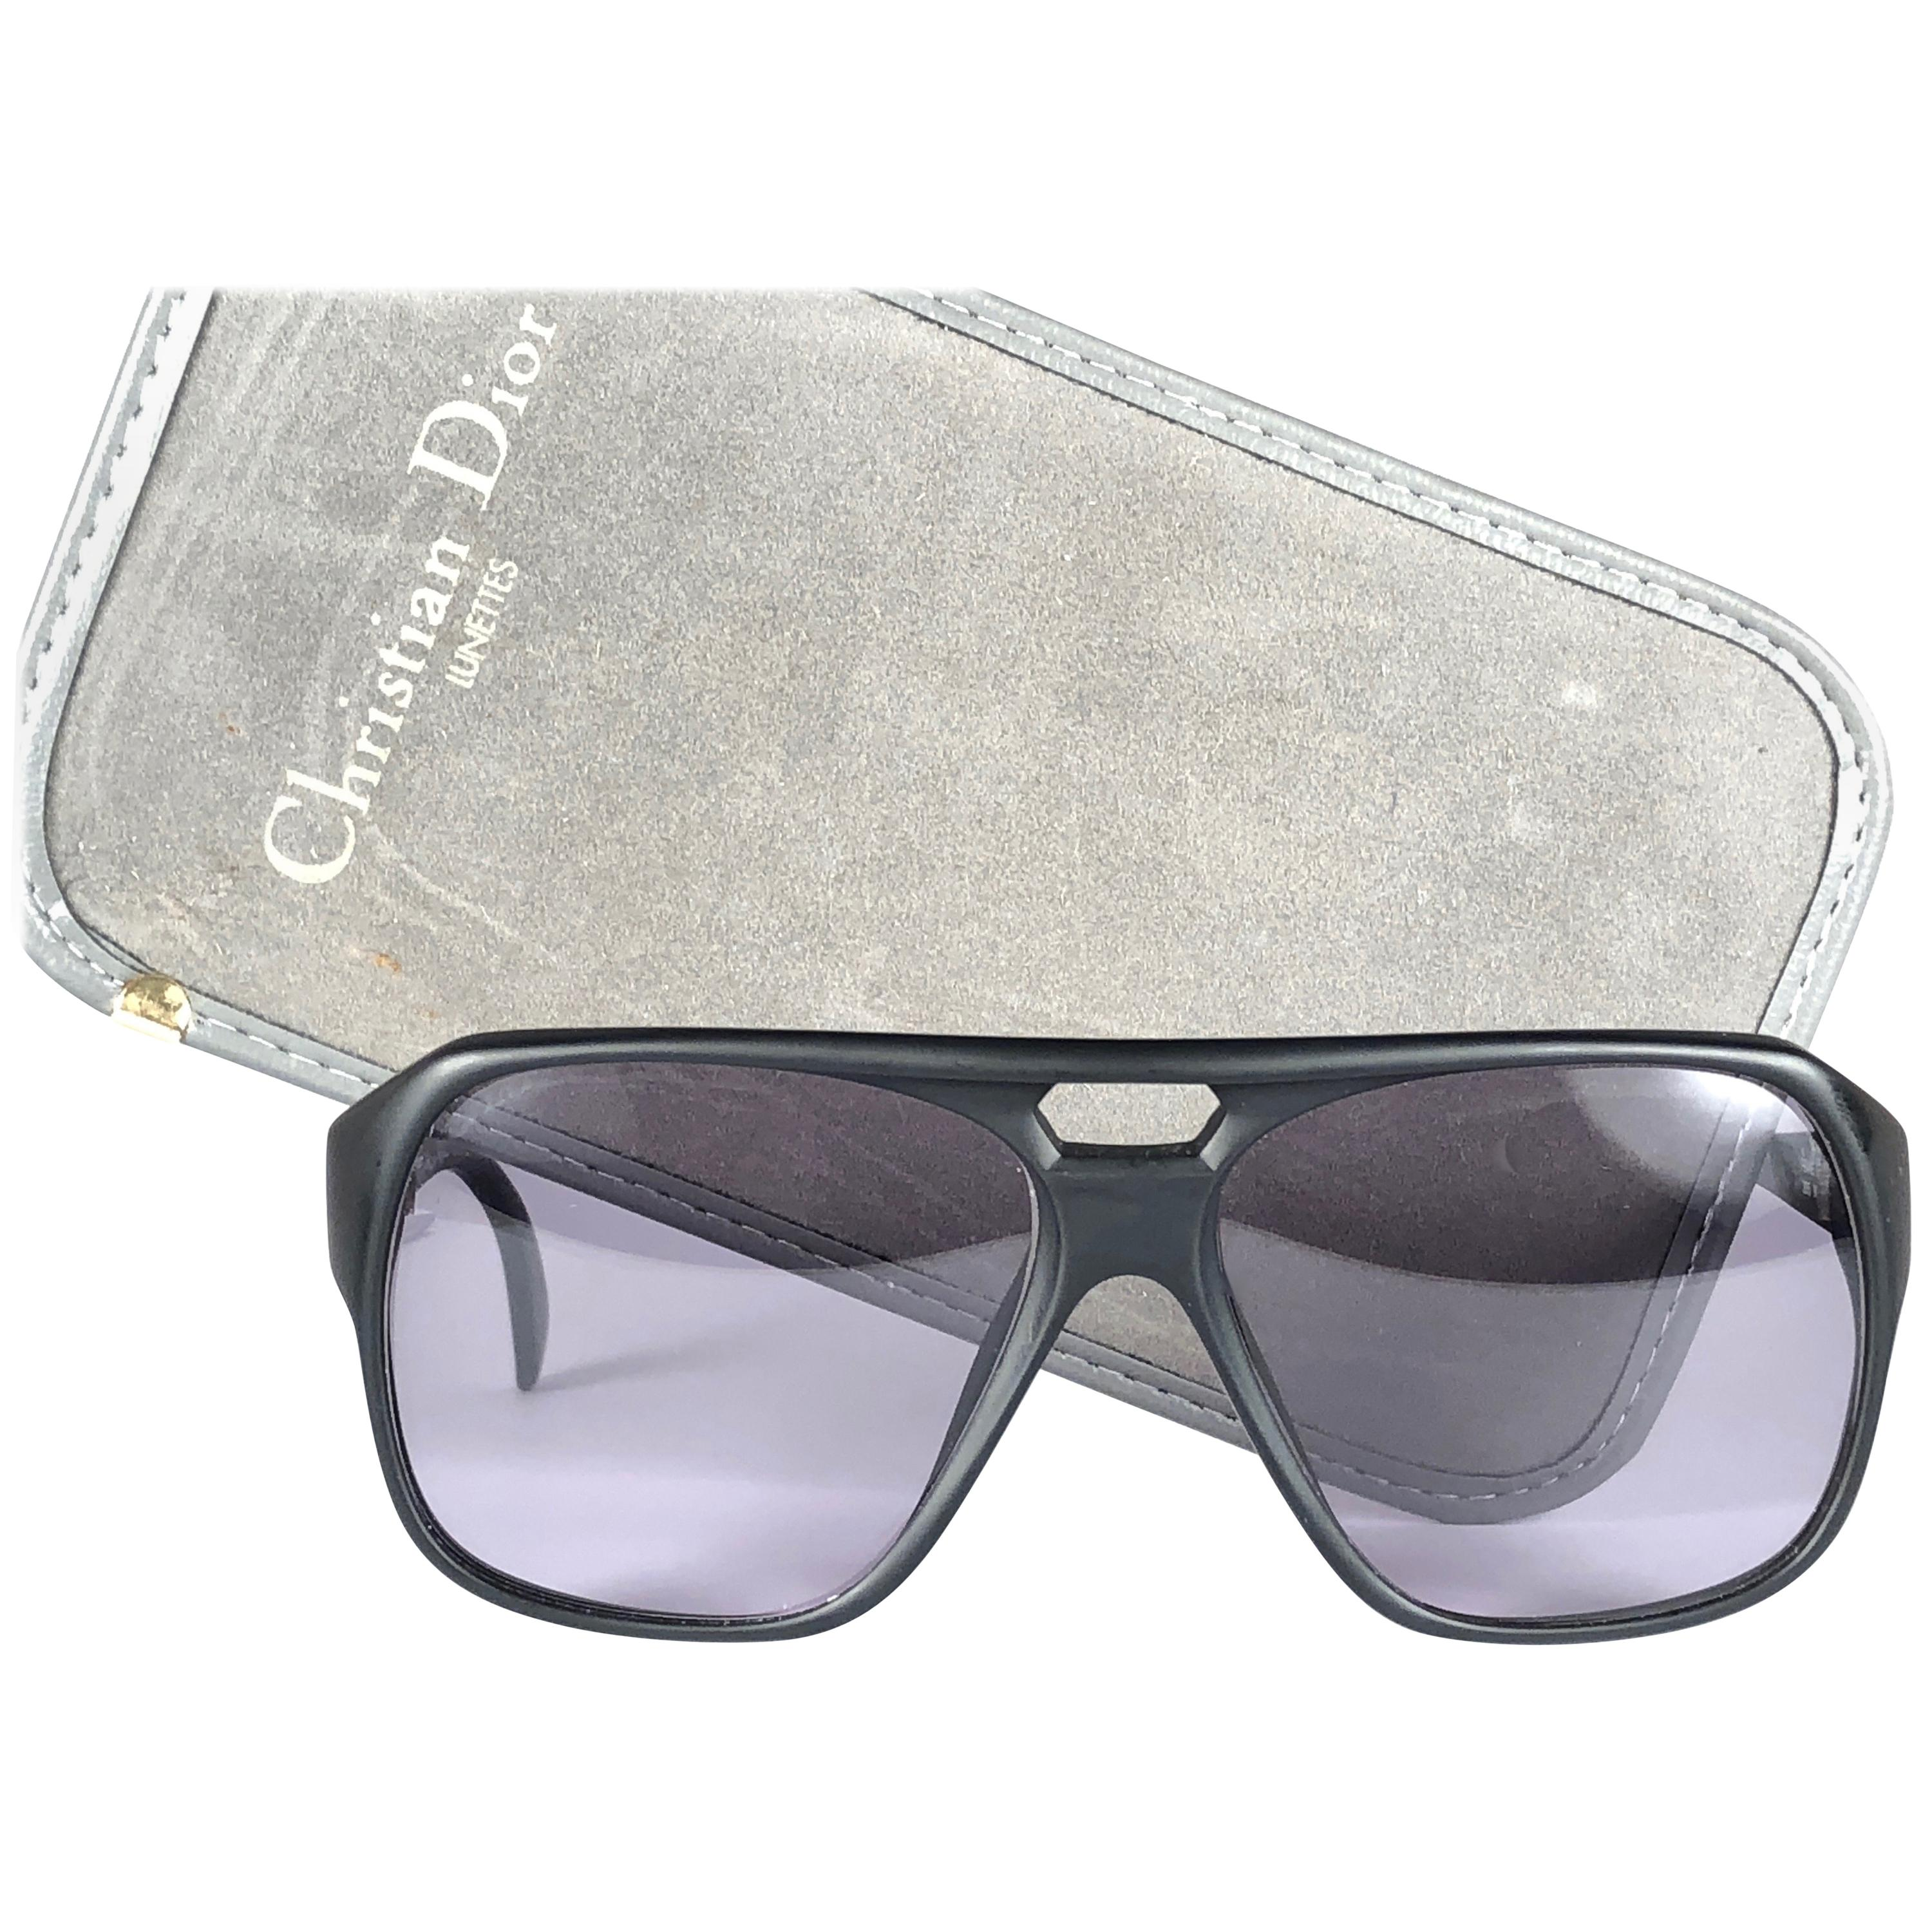 2389c2a414e Vintage Christian Dior Sunglasses - 238 For Sale at 1stdibs - Page 2